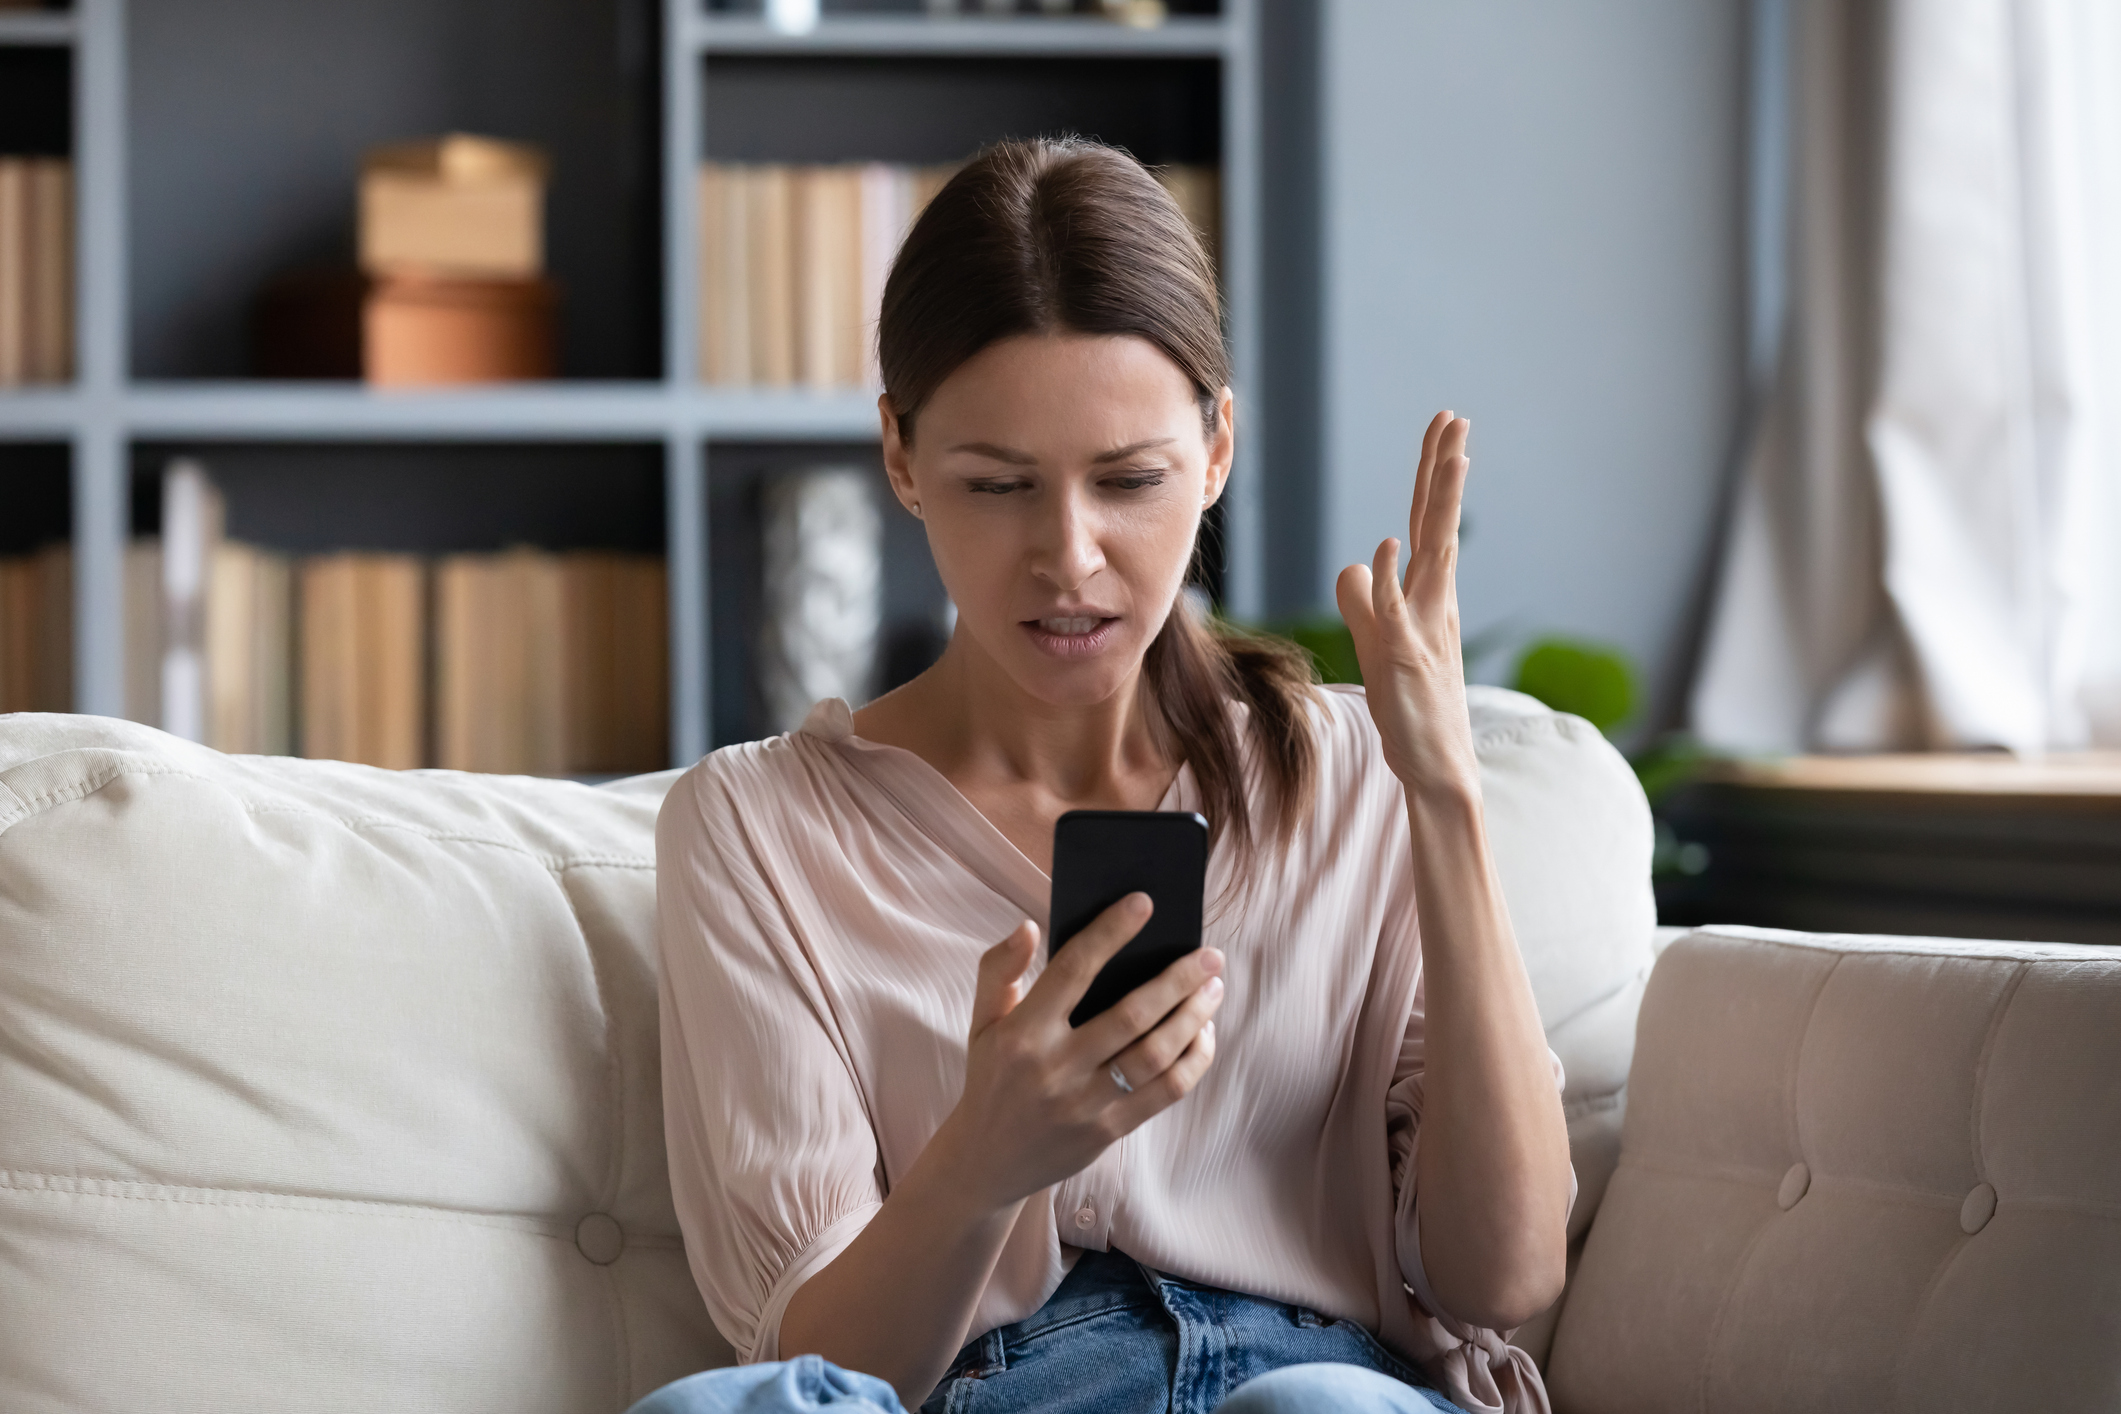 Woman looking at phone and confused